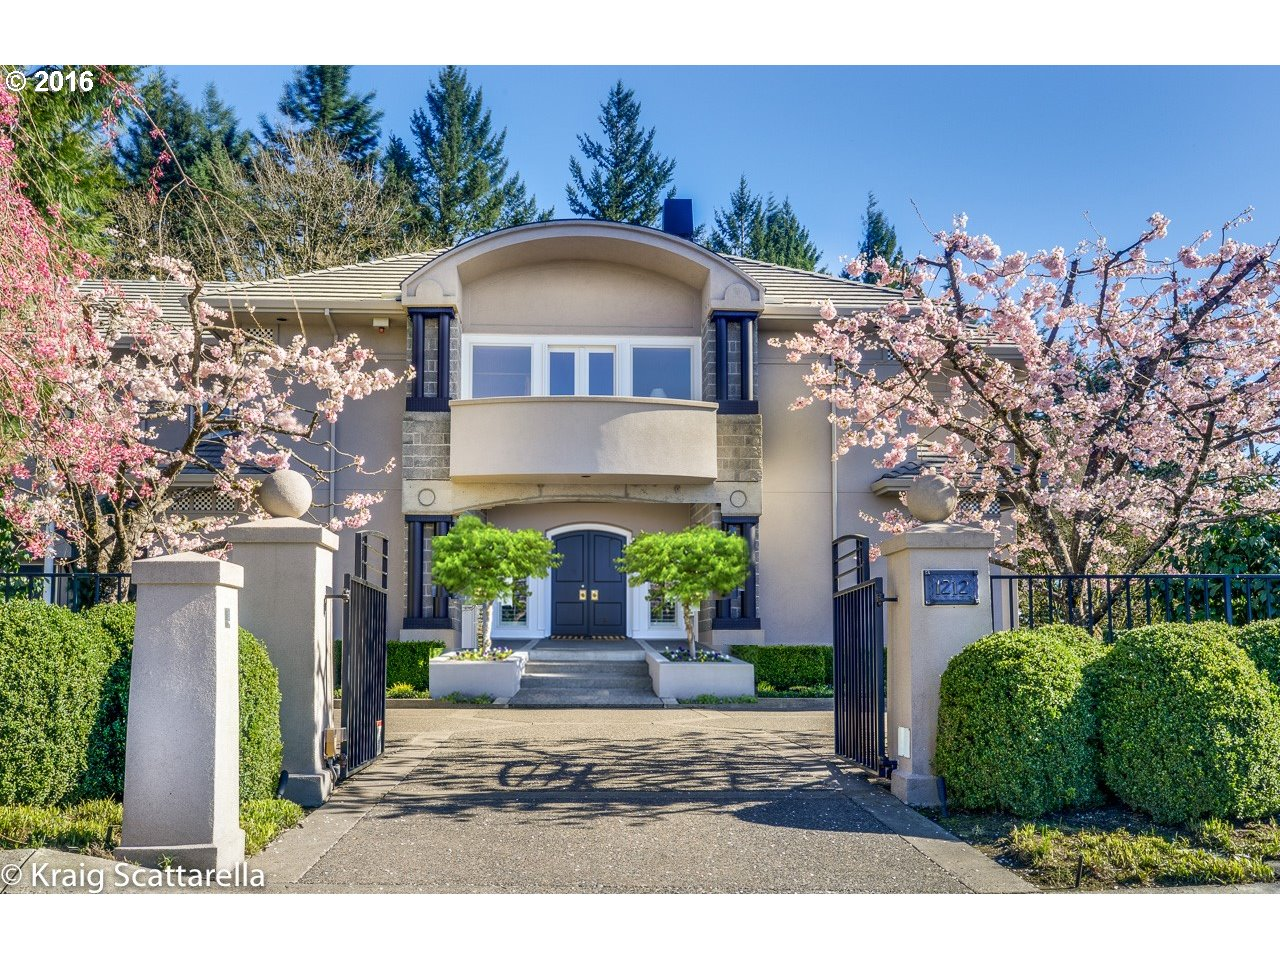 7514 sq. ft 4 bedrooms 4 bathrooms  House For Sale, Portland, OR